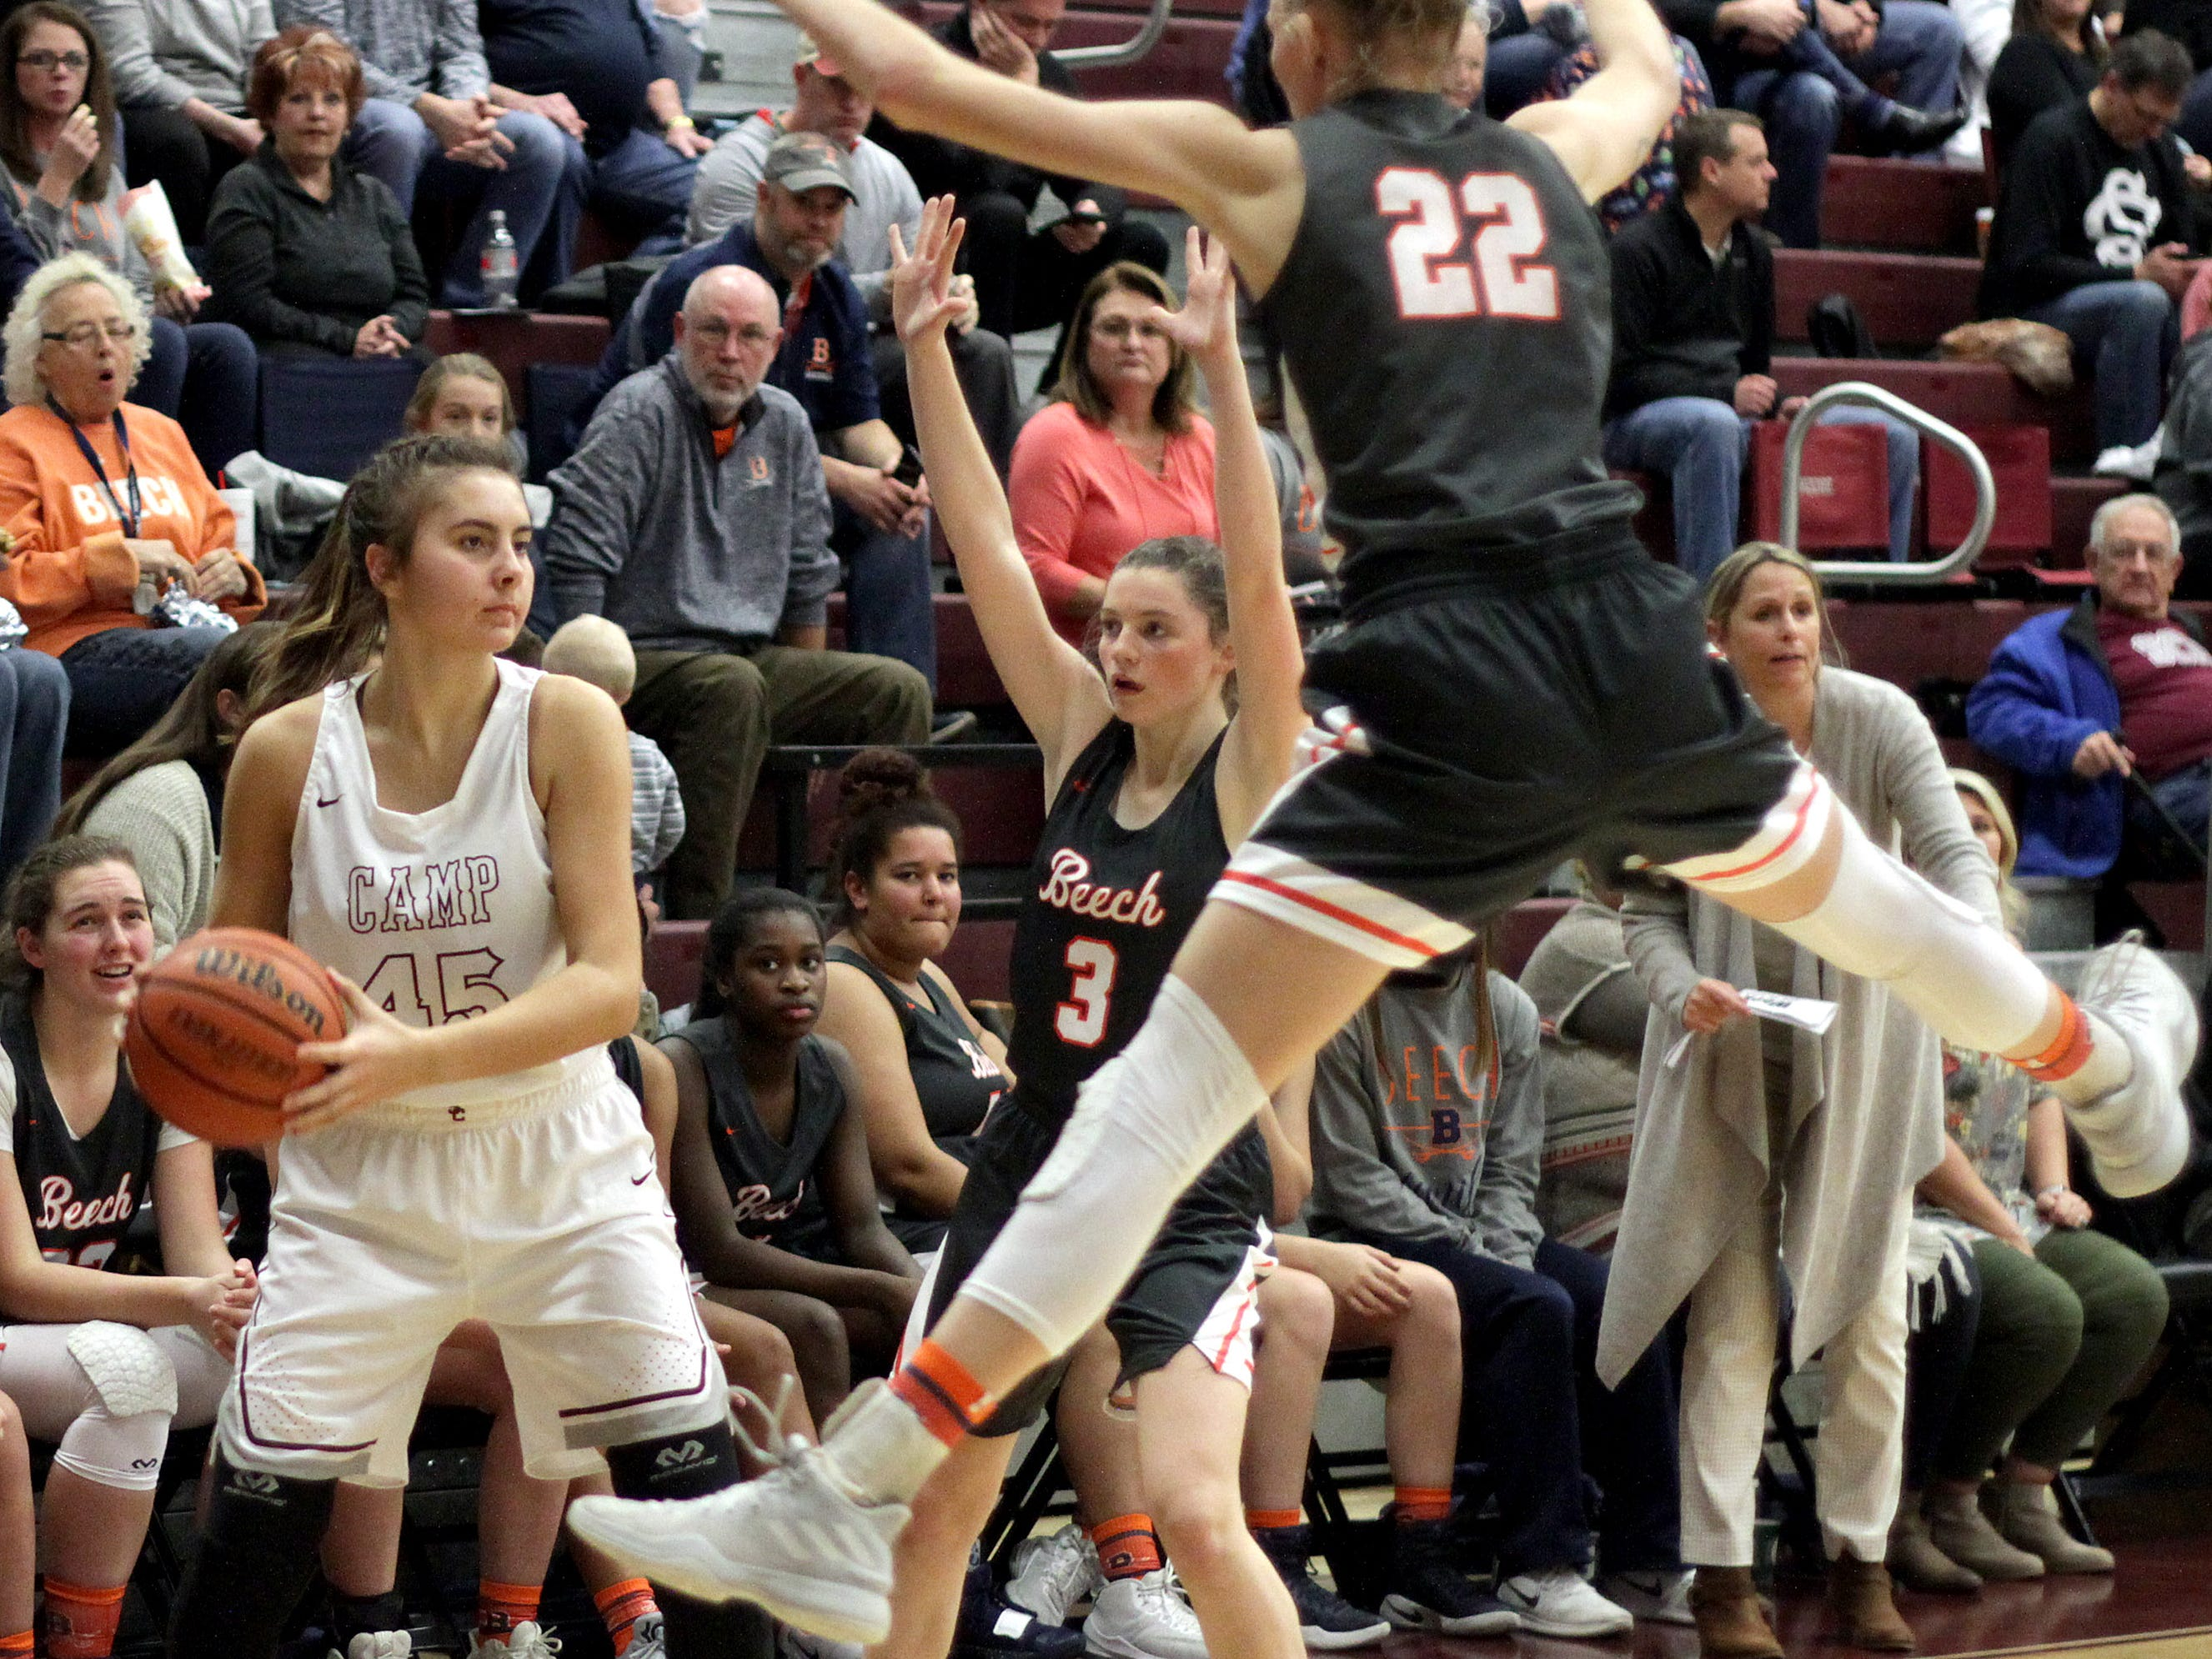 Station Camp's Olivia Delk looks to inbound the ball as Beech's Kenda Muellar and Jana Claie Swafford guard on Friday, December 7, 2018.